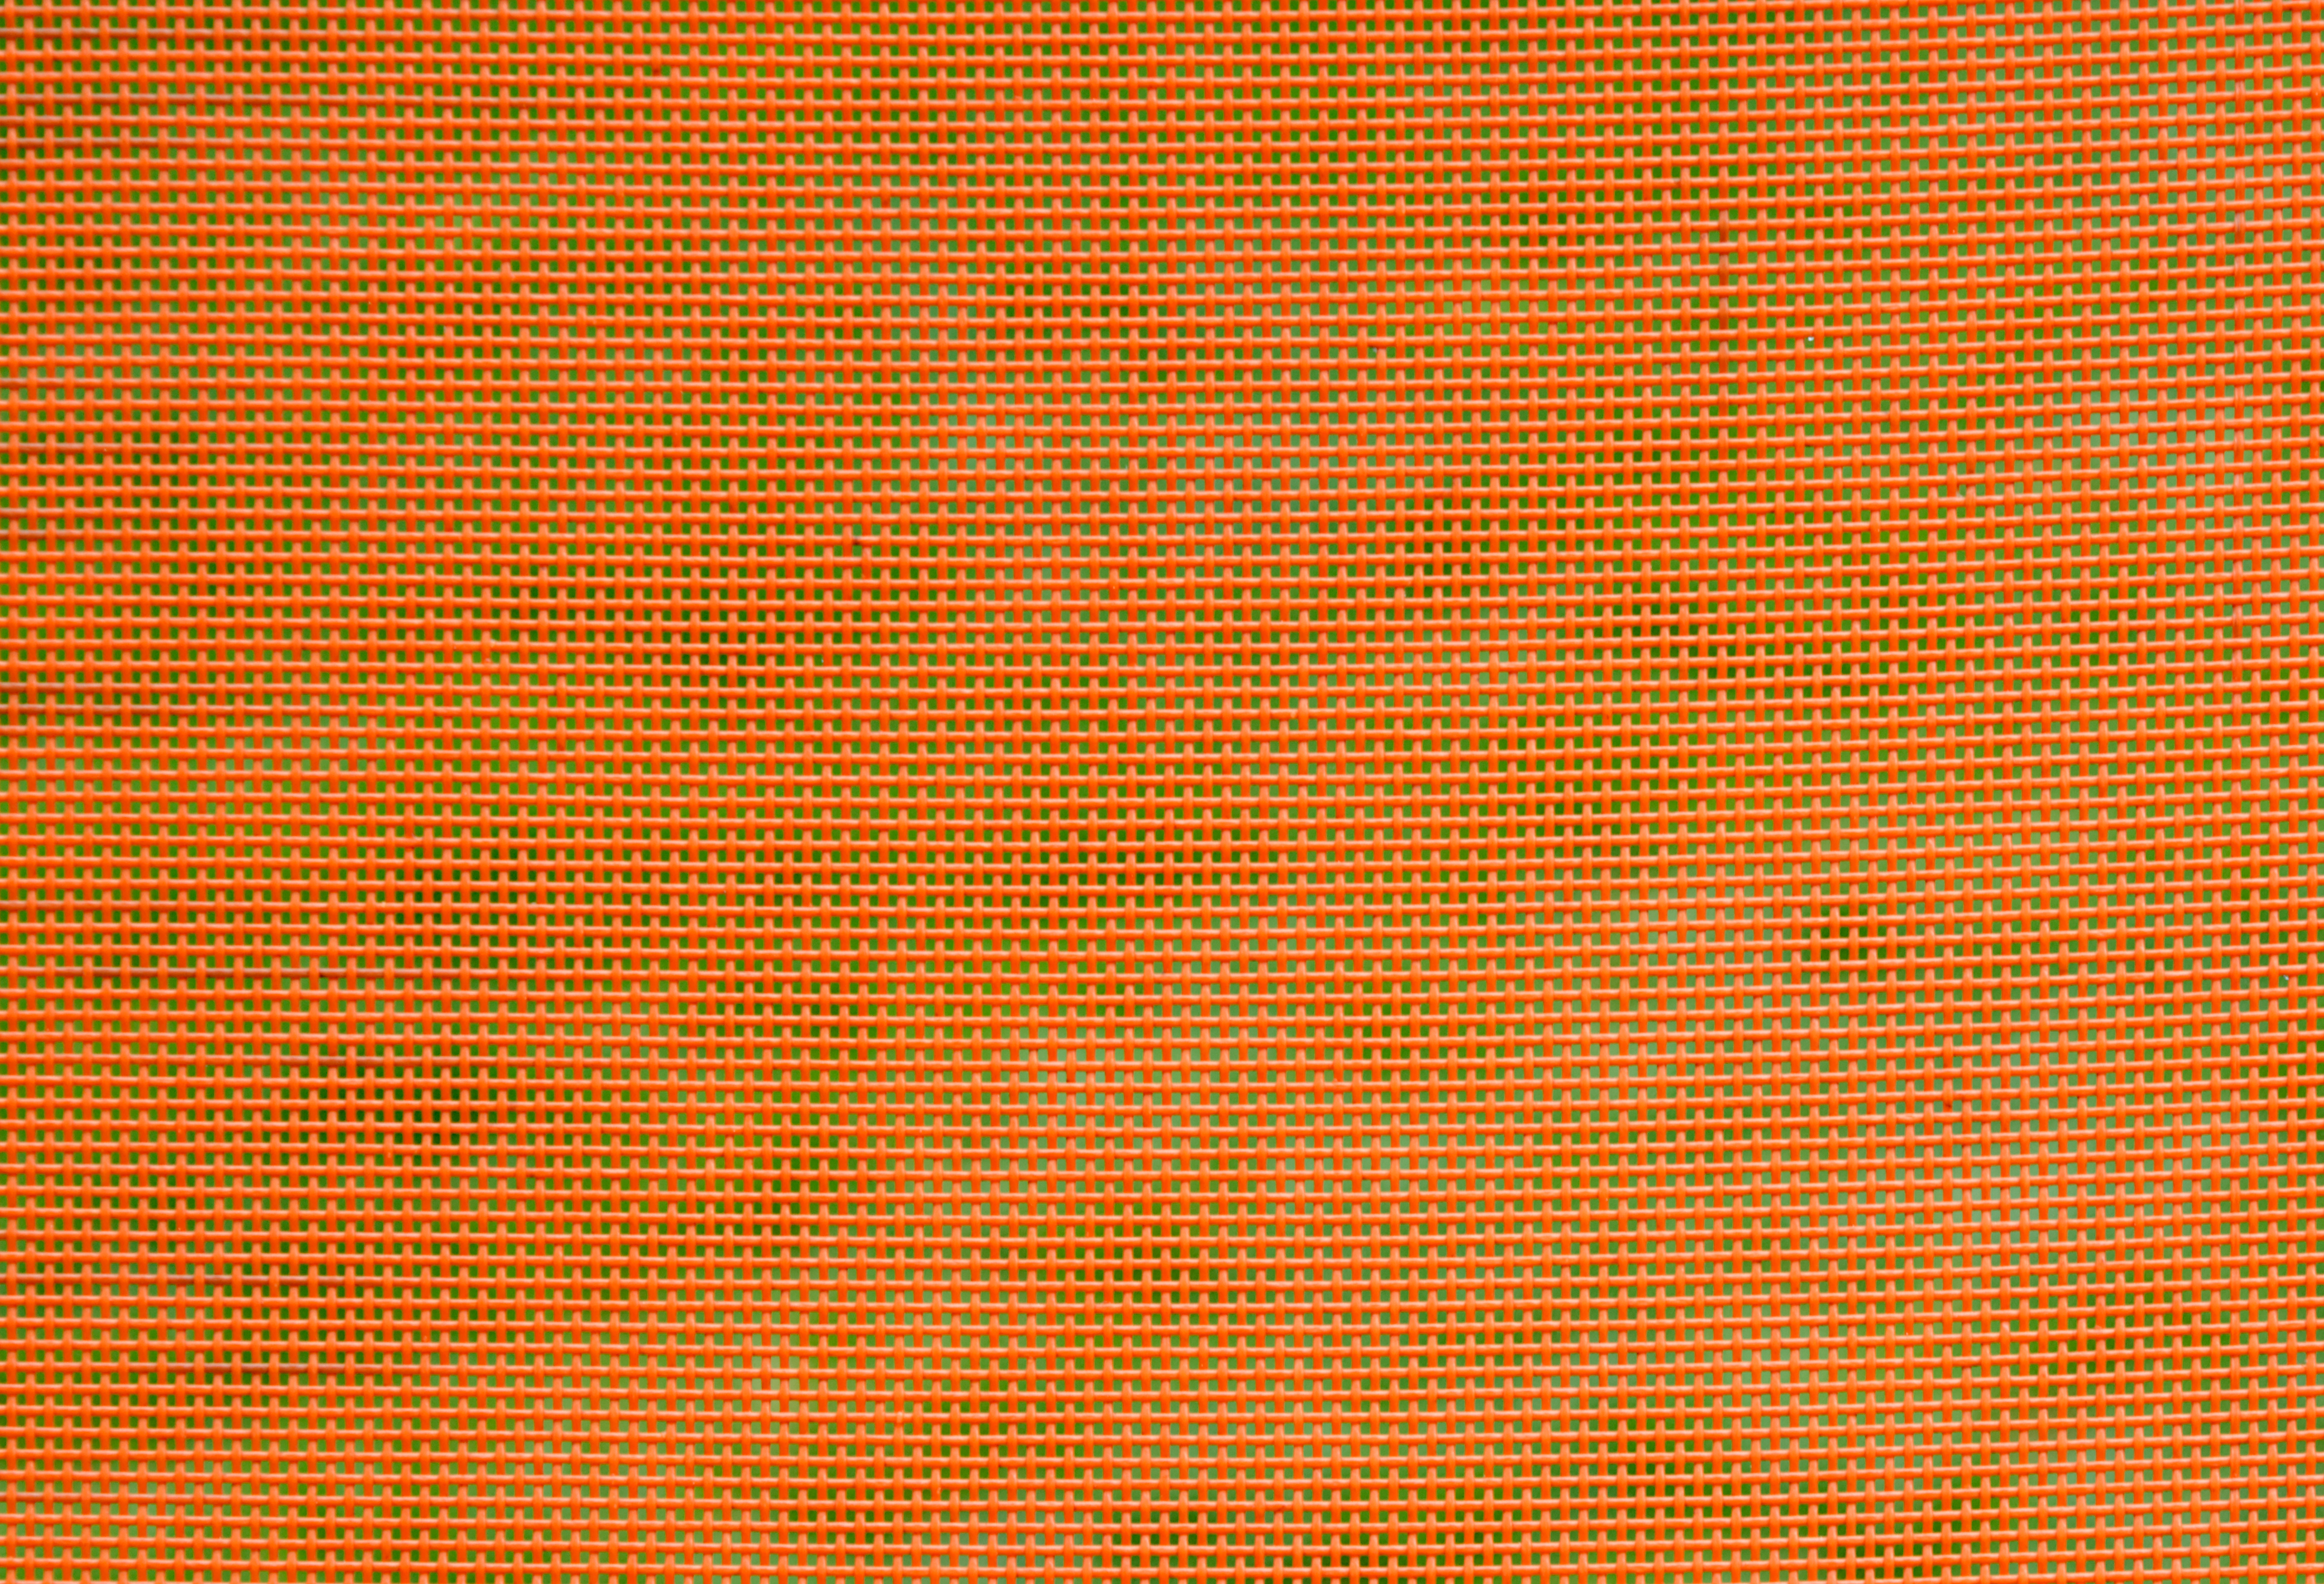 136067 free download Orange wallpapers for phone, Textures, Texture, Grid, Pattern Orange images and screensavers for mobile